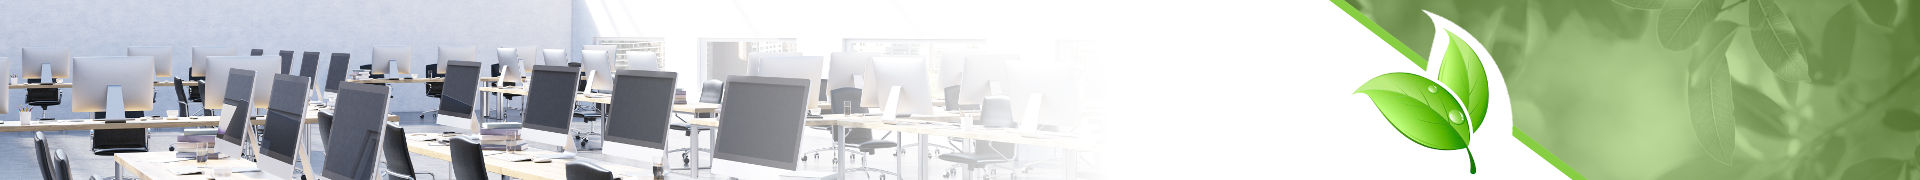 Accelerate Commercial Cleaning